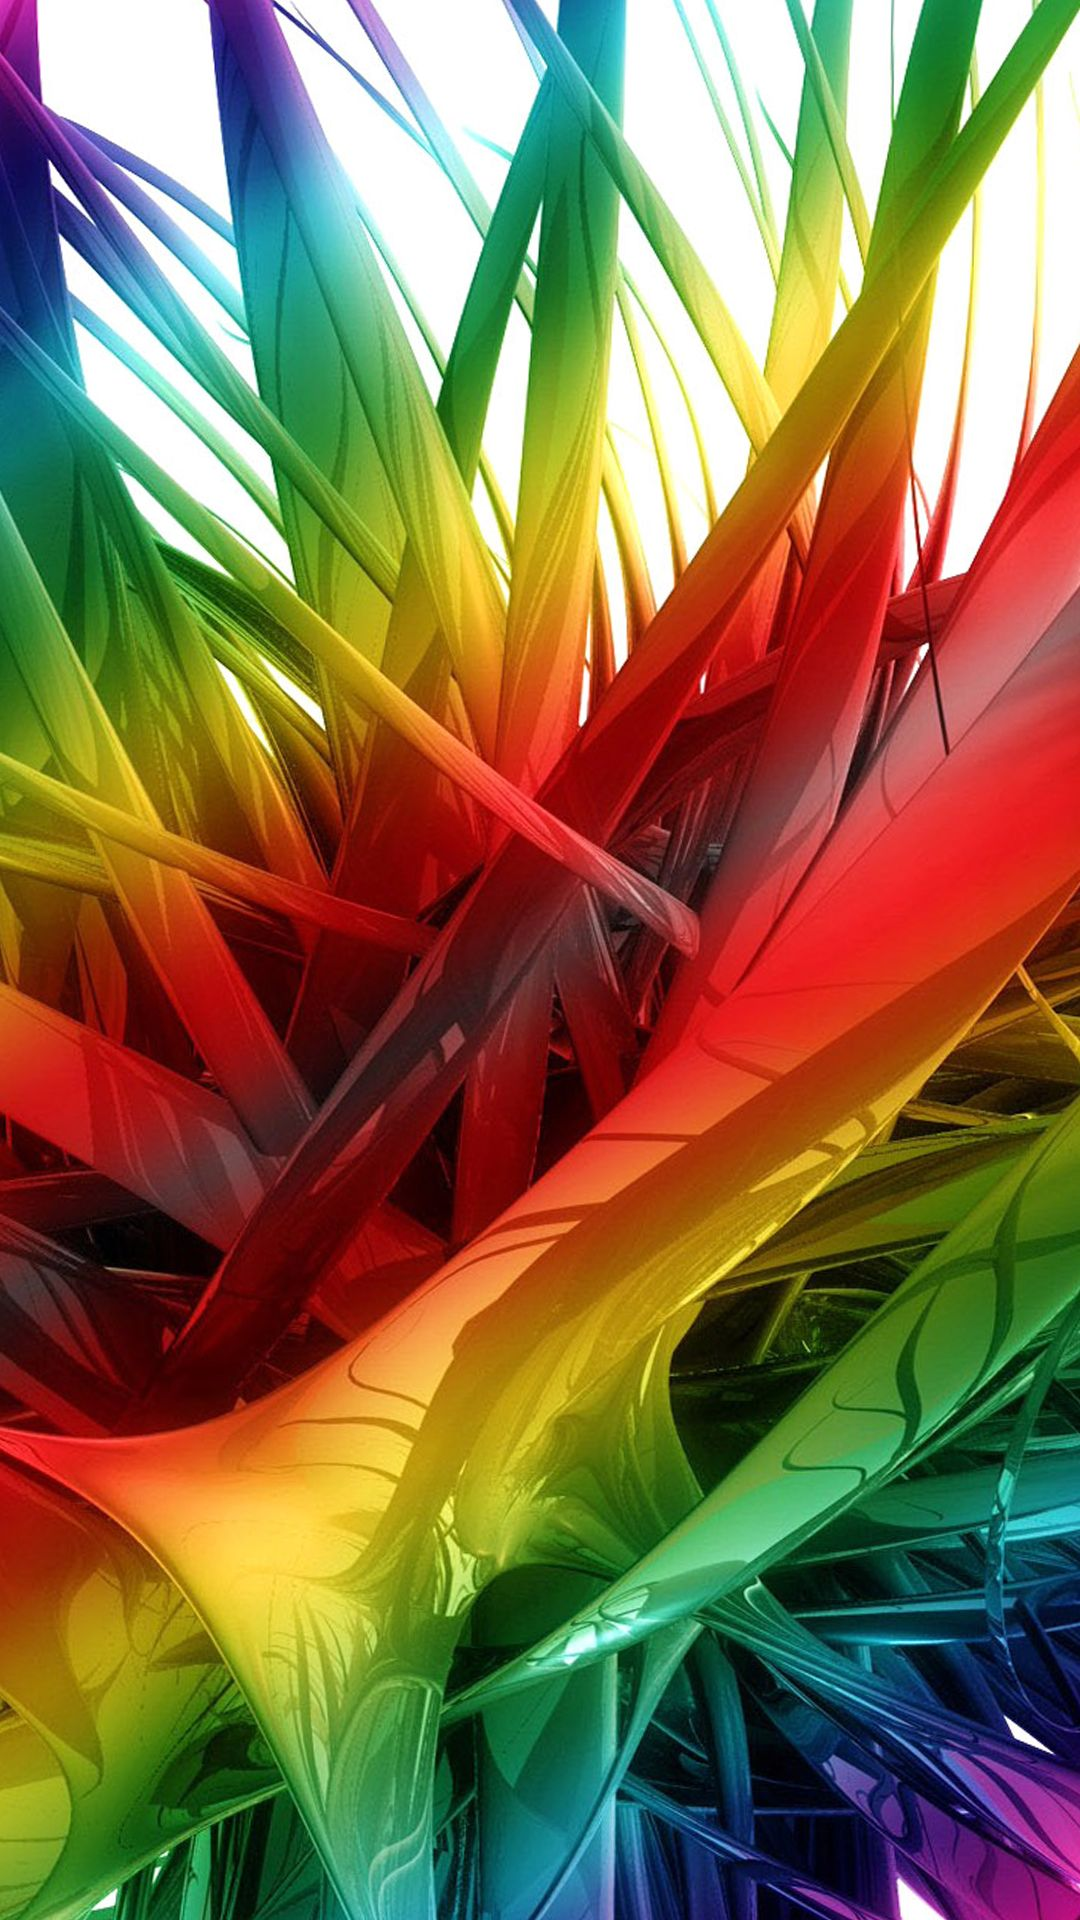 Abstract Colorful Wallpaper for Android Phones with 5 inch Display ...